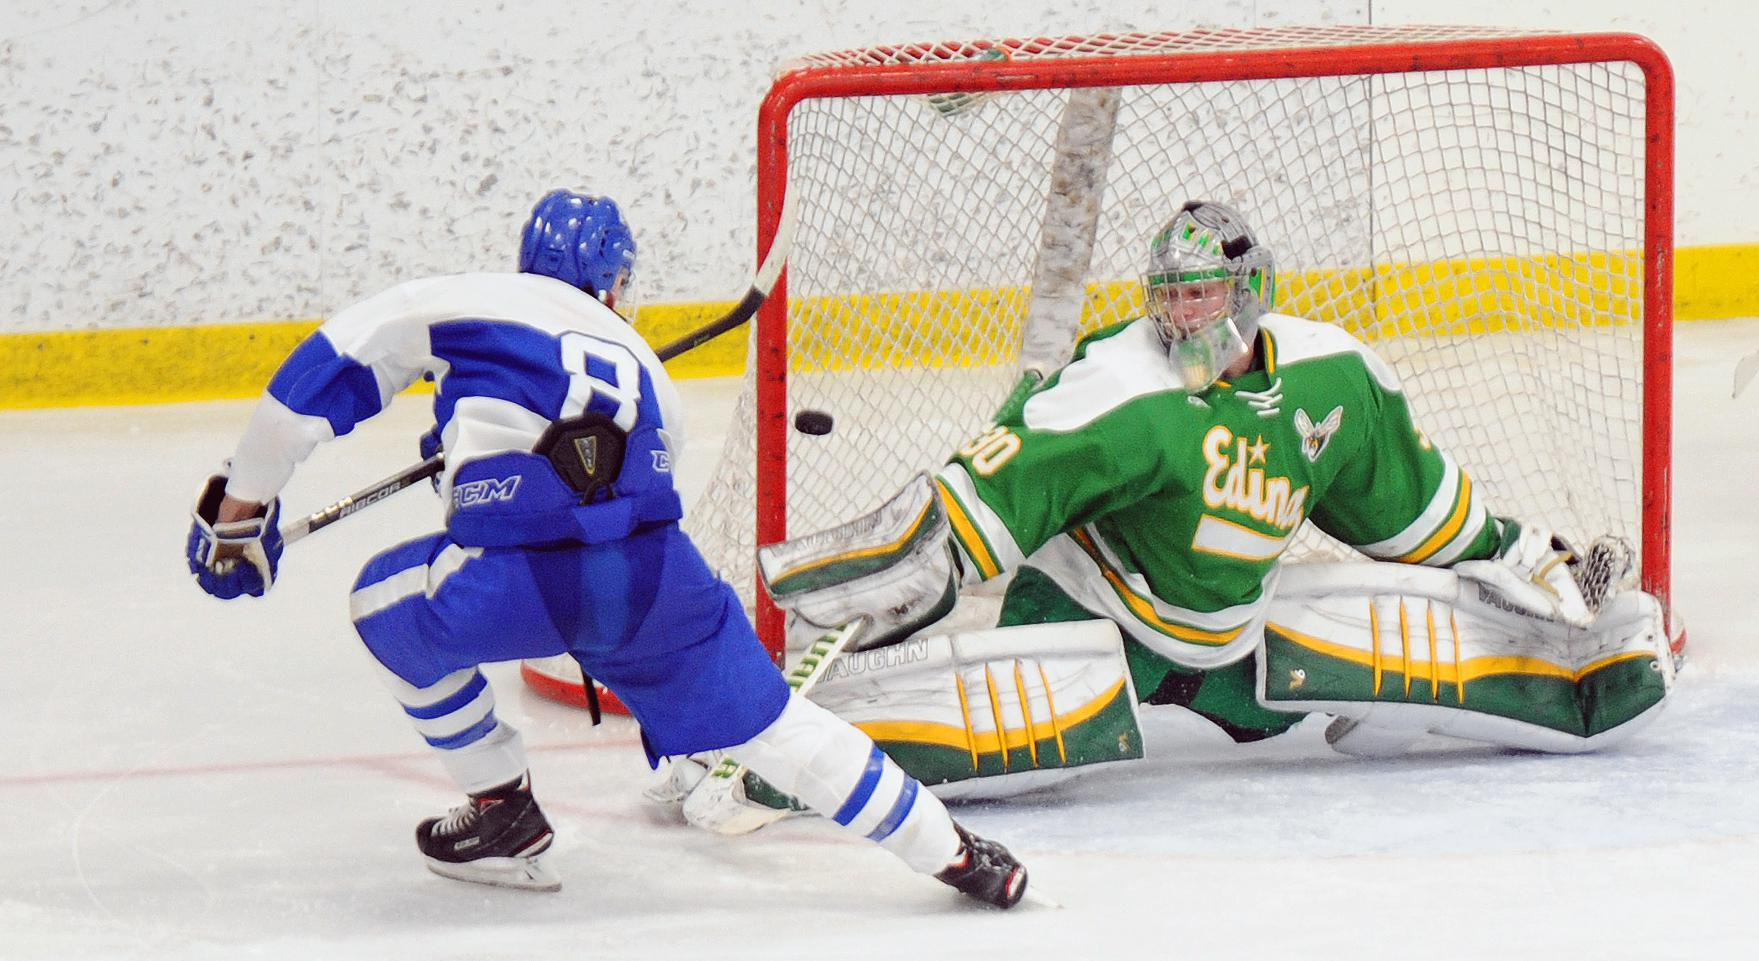 Minnetonka's Luke Loheit fires a shot past Edina's Garrett Mackay in the third period on Saturday afternoon as the No. 2 Skippers beat No. 1 Edina 5-3. Photo by Loren Nelson, legacyhockeyphotography.net